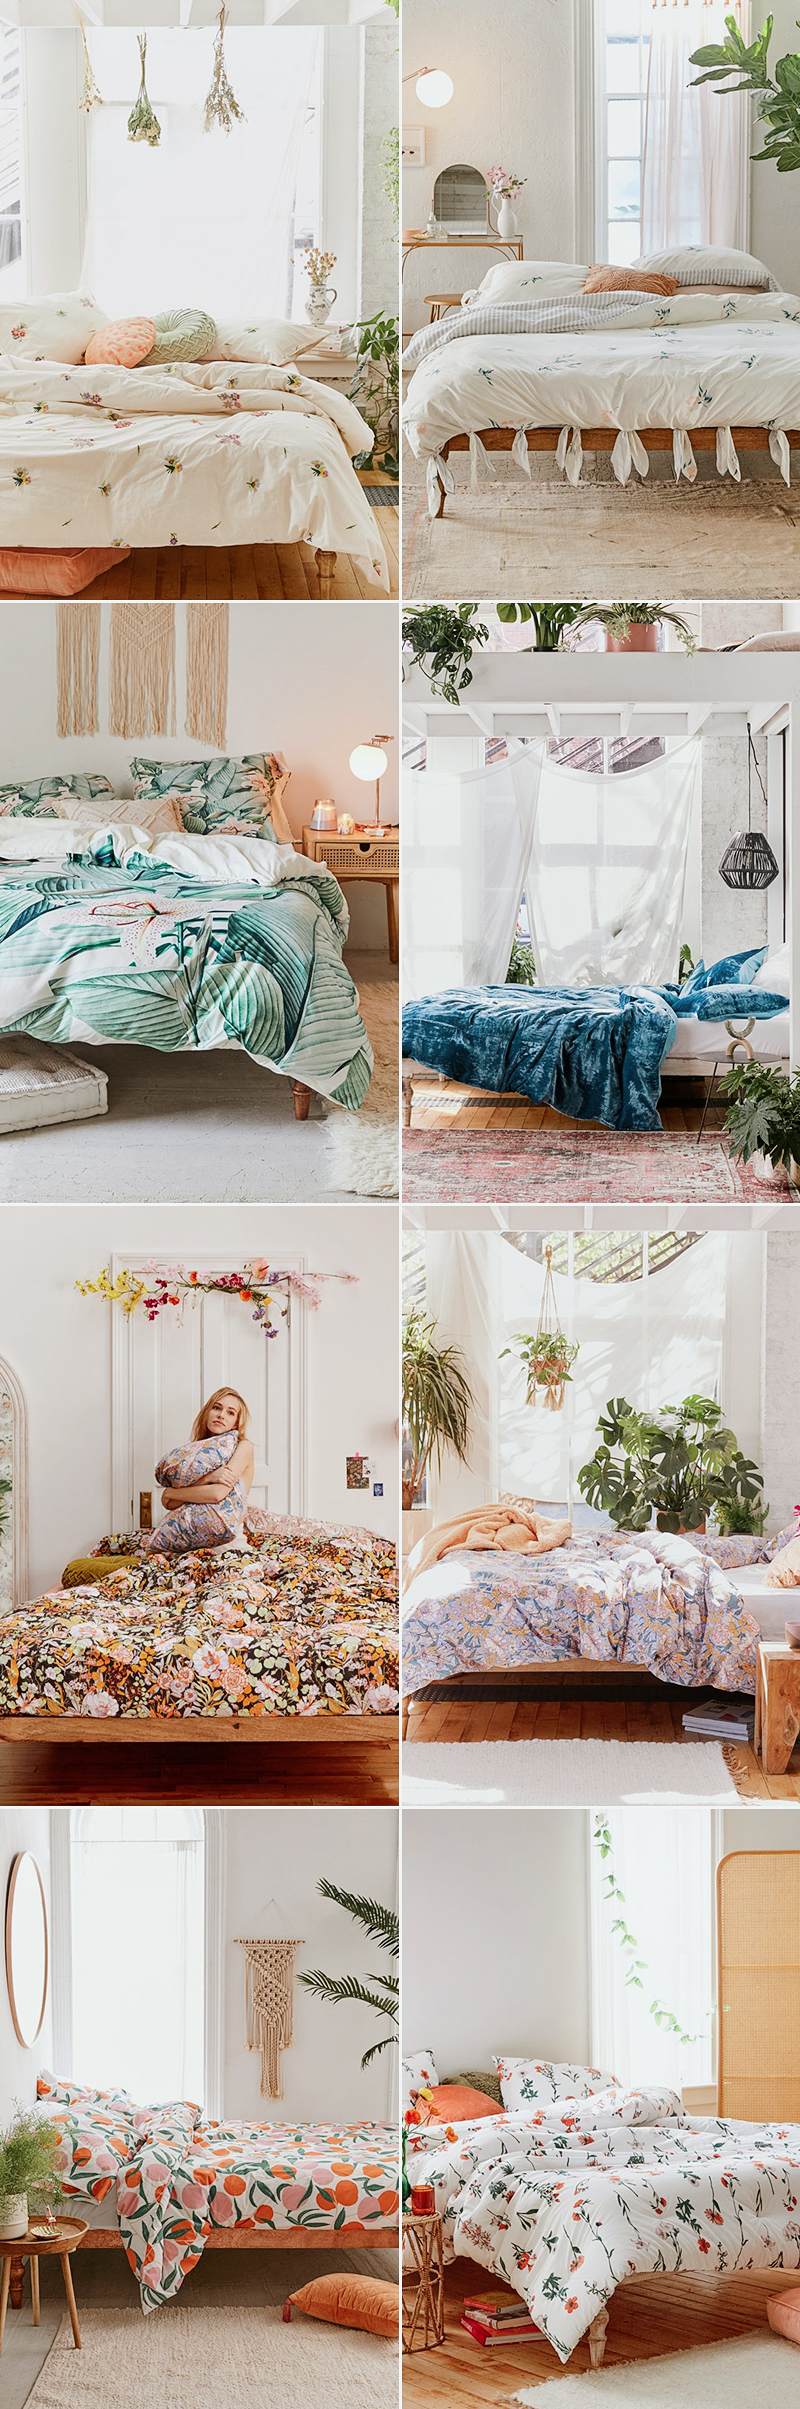 wedding gift idea nature inspired bedding